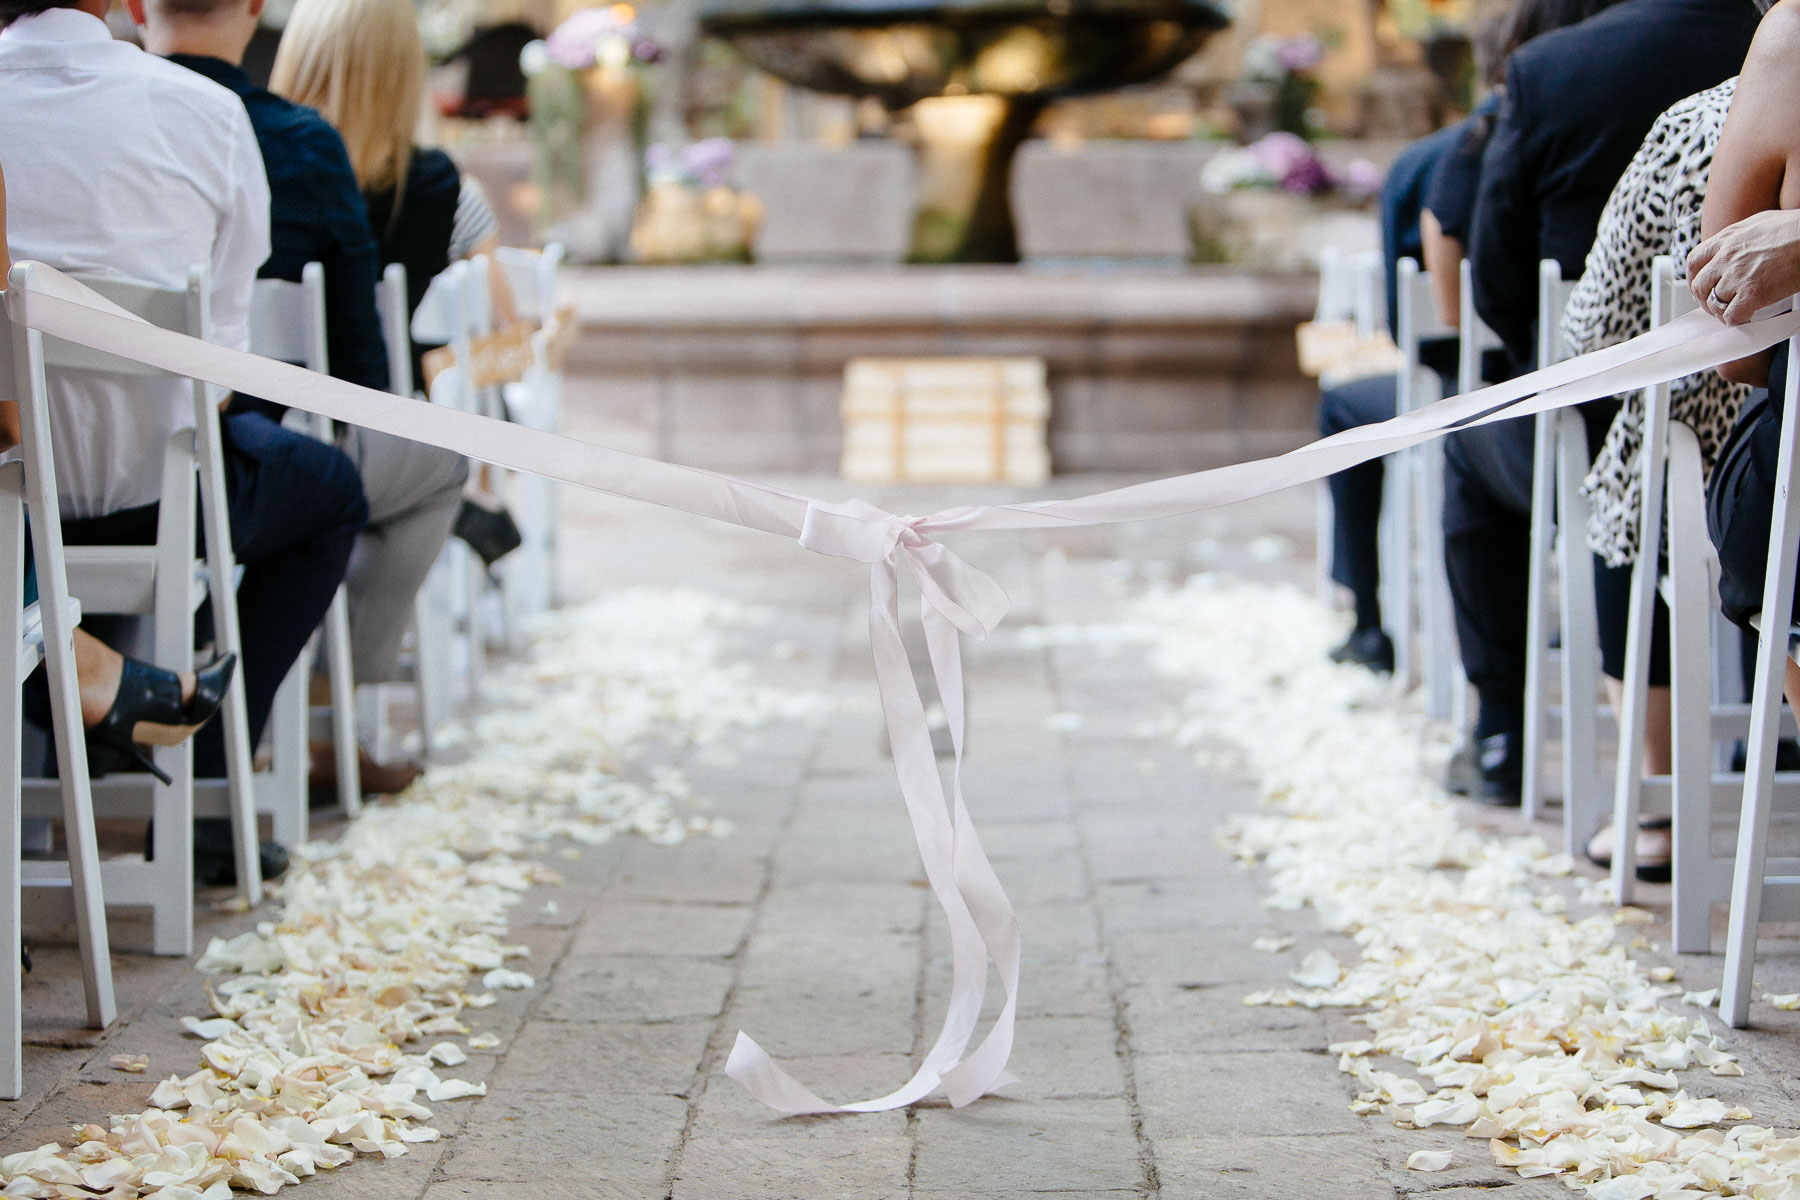 161112-Luxium-Weddings-Arizona-Jon-Madison-Boojum-Tree-First-Look-018.jpg